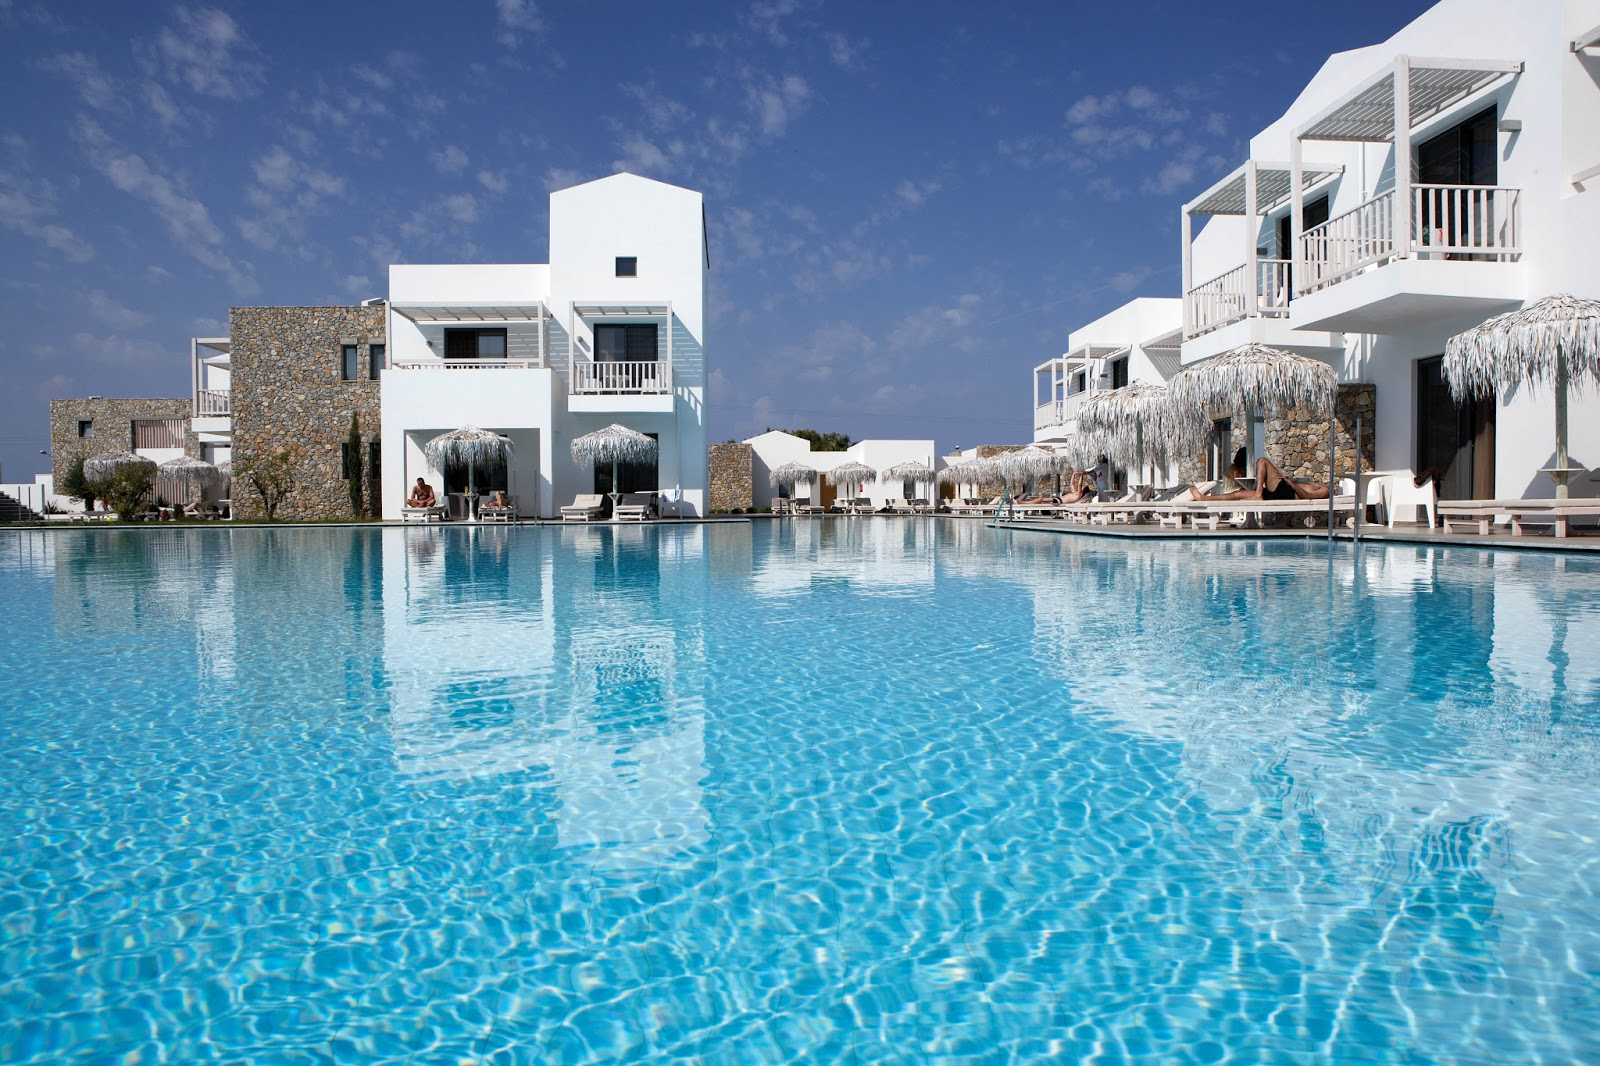 Diamond deluxe hotel wellness business kos greece for Design boutique hotel kos